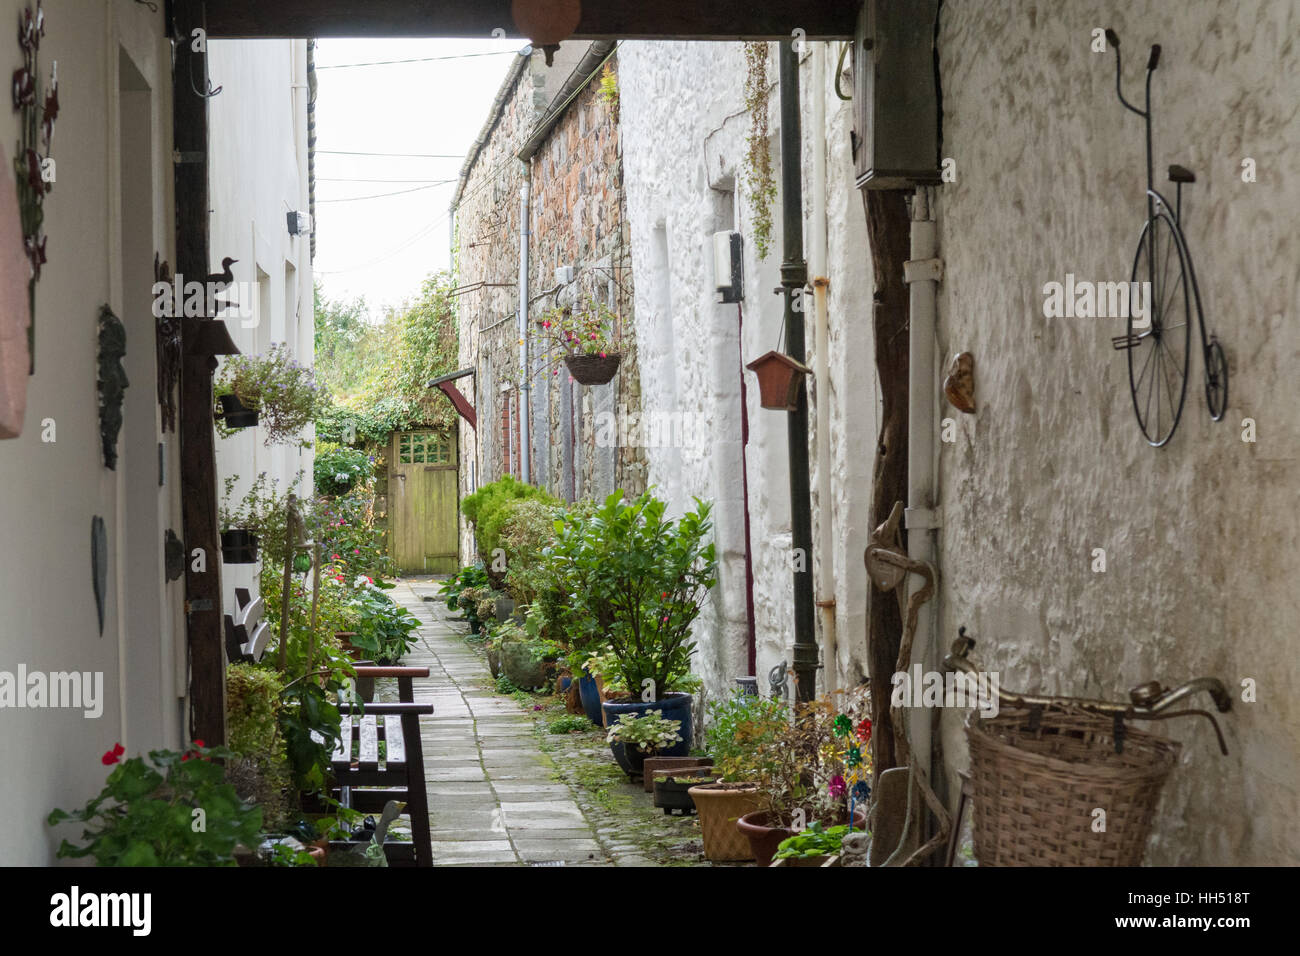 Kirkcudbright, Dumfries and Galloway, Scotland - picturesque close (Passageway) and garden between cottages - Stock Image